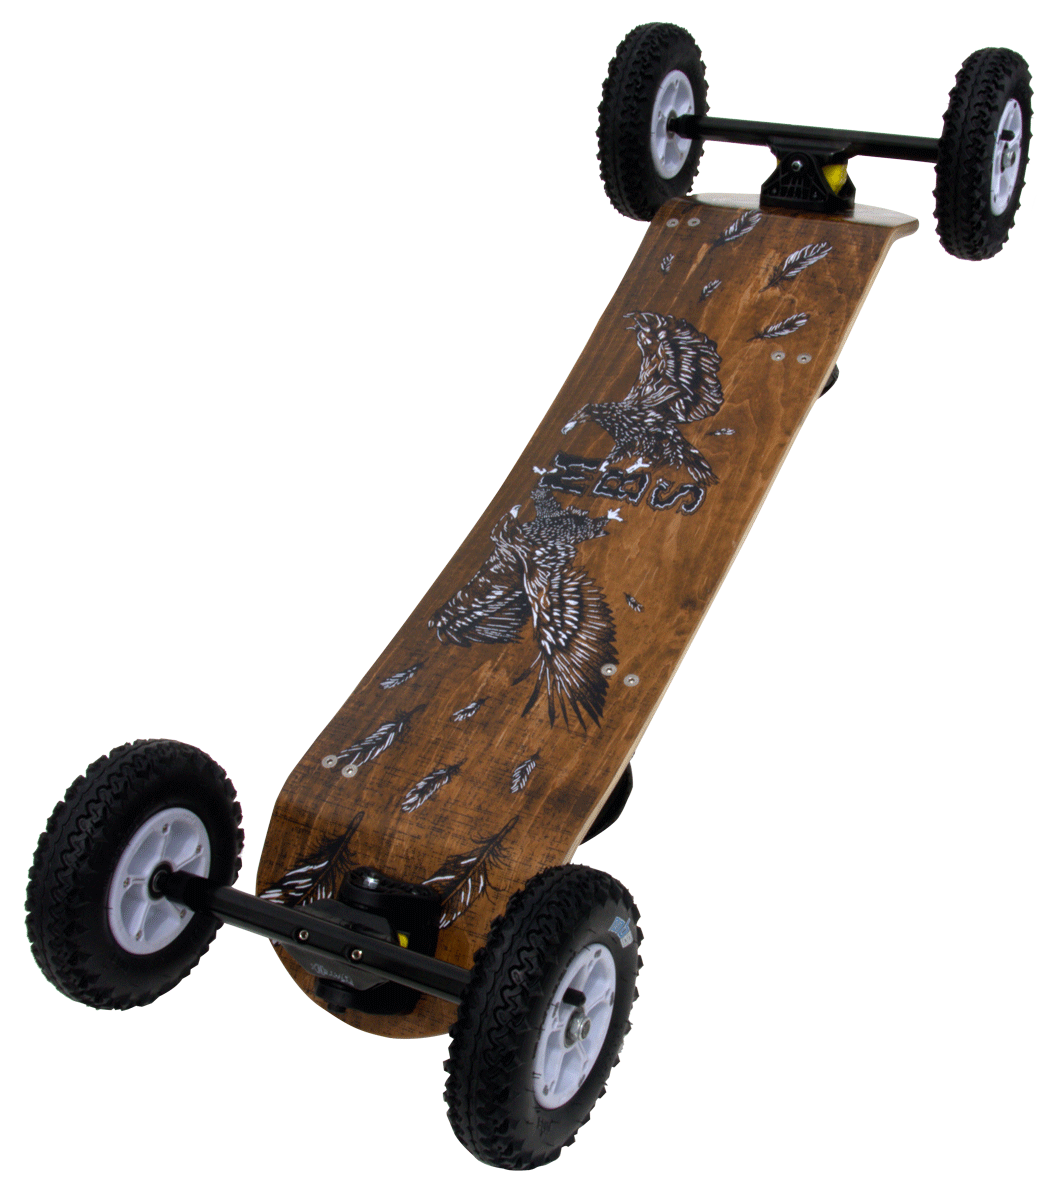 10301 - MBS Comp 95 Mountainboard - Birds - Bottom 3Qtr.png